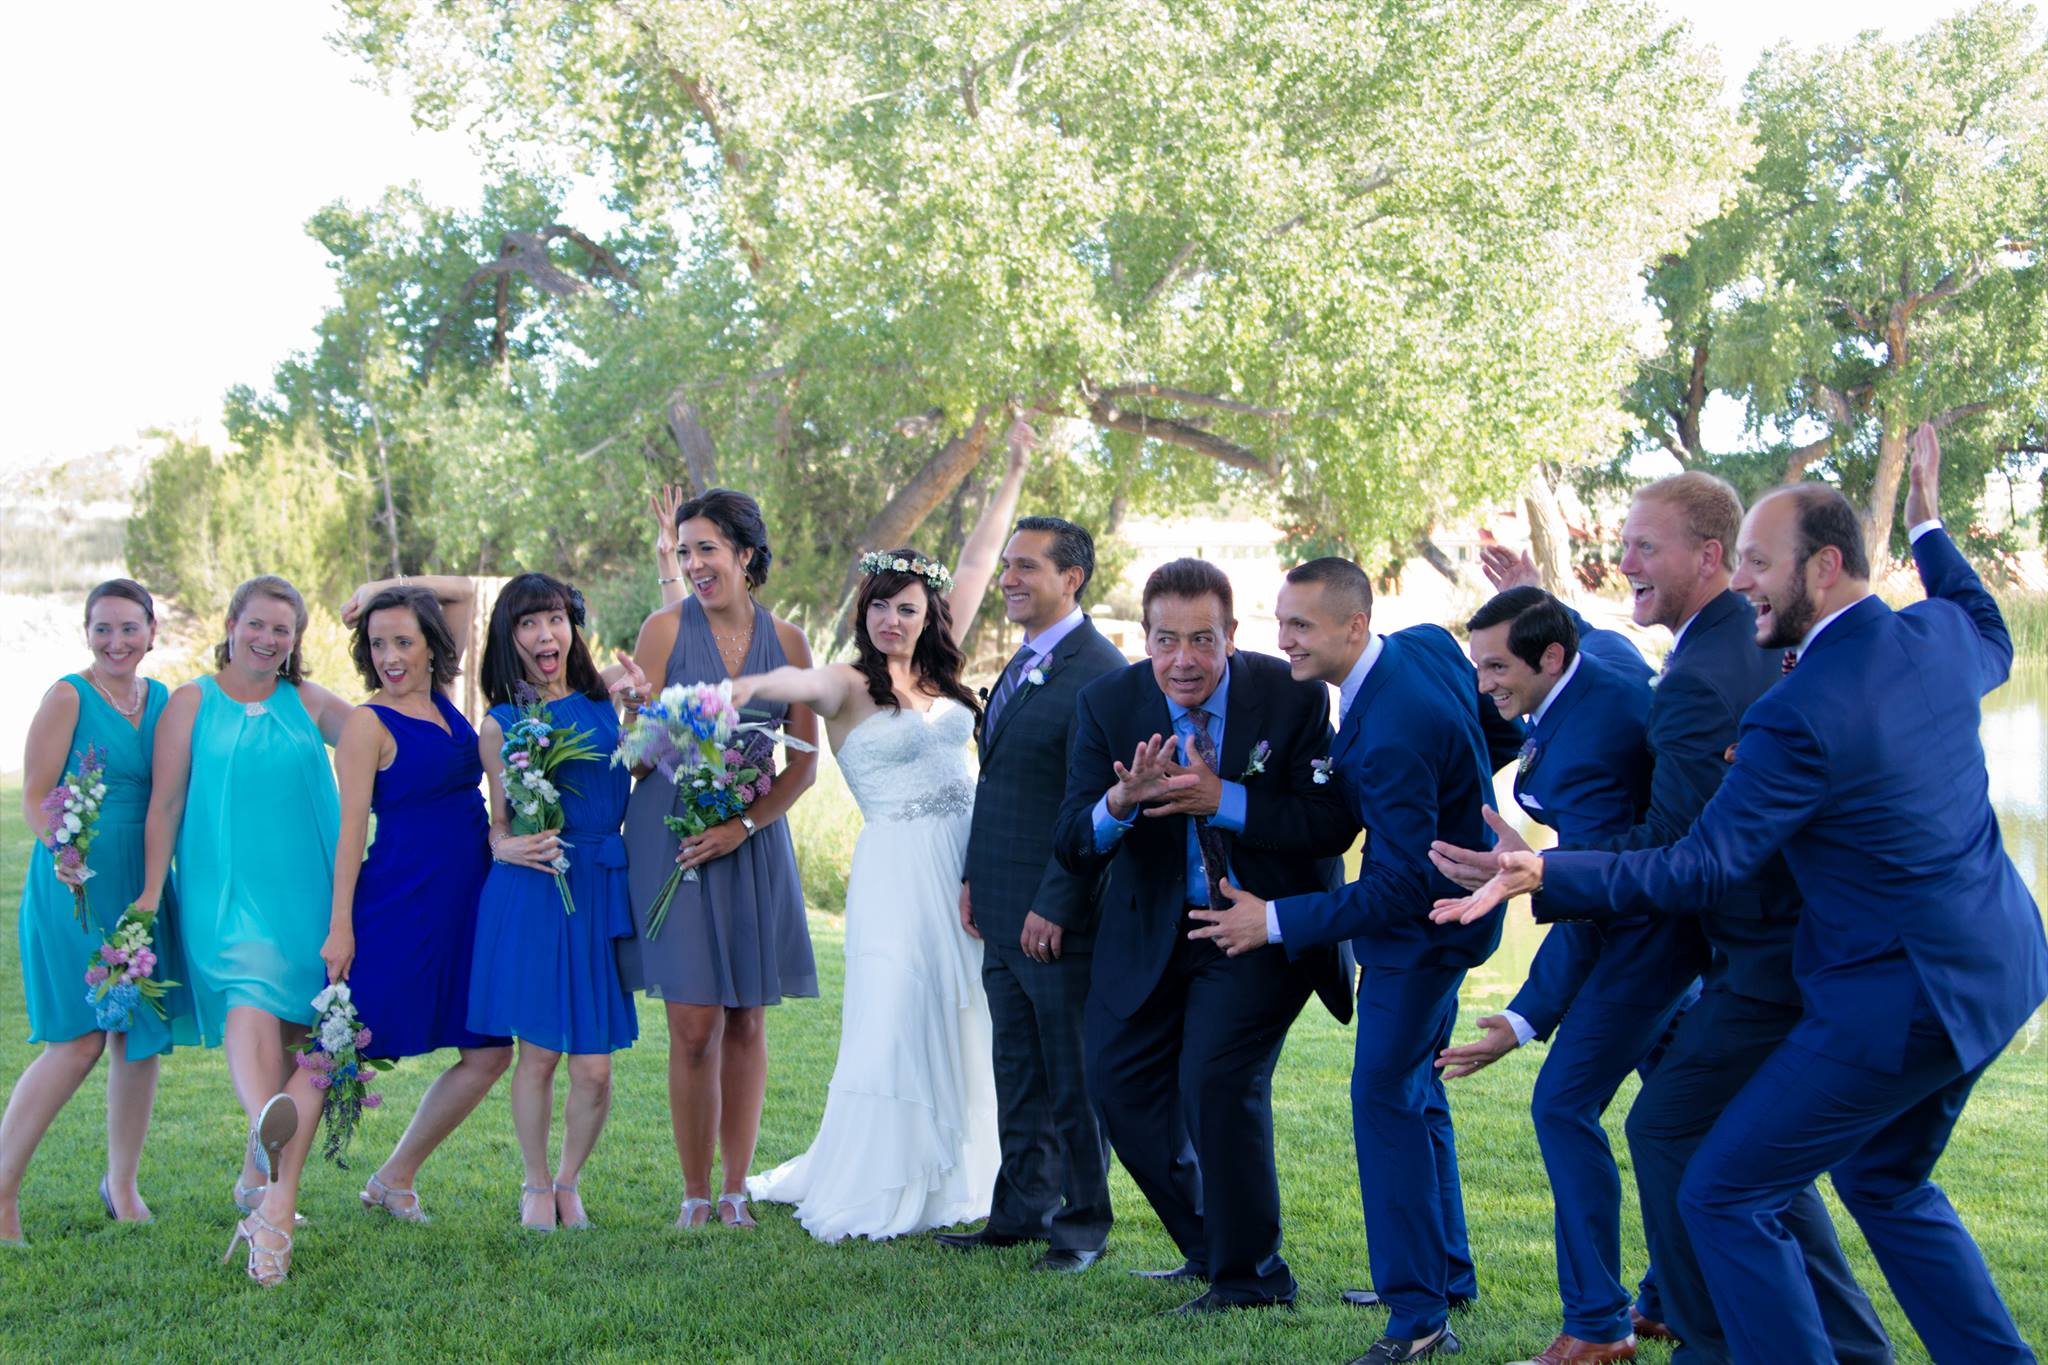 The bridal party celebrates a successful wedding!